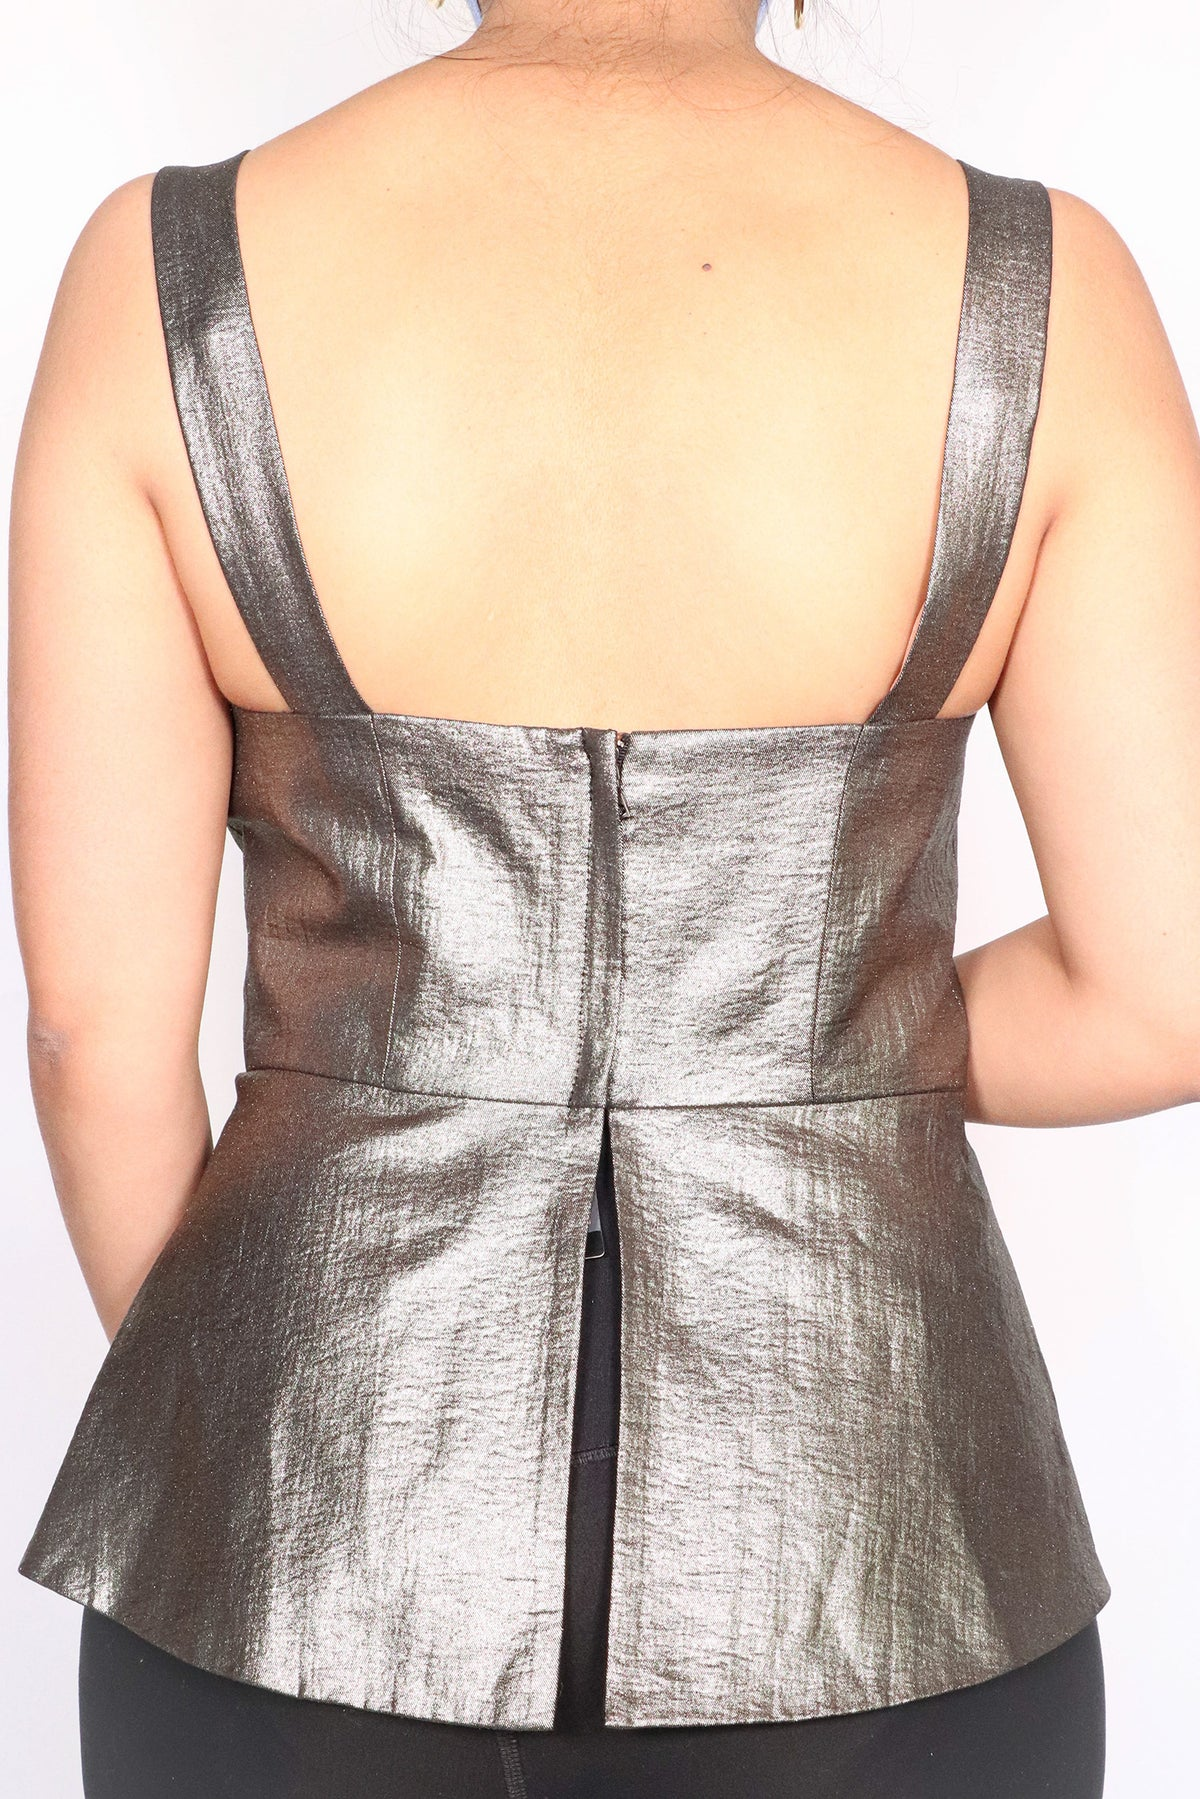 BCBGMAXAZRIA - Metallic Top - S